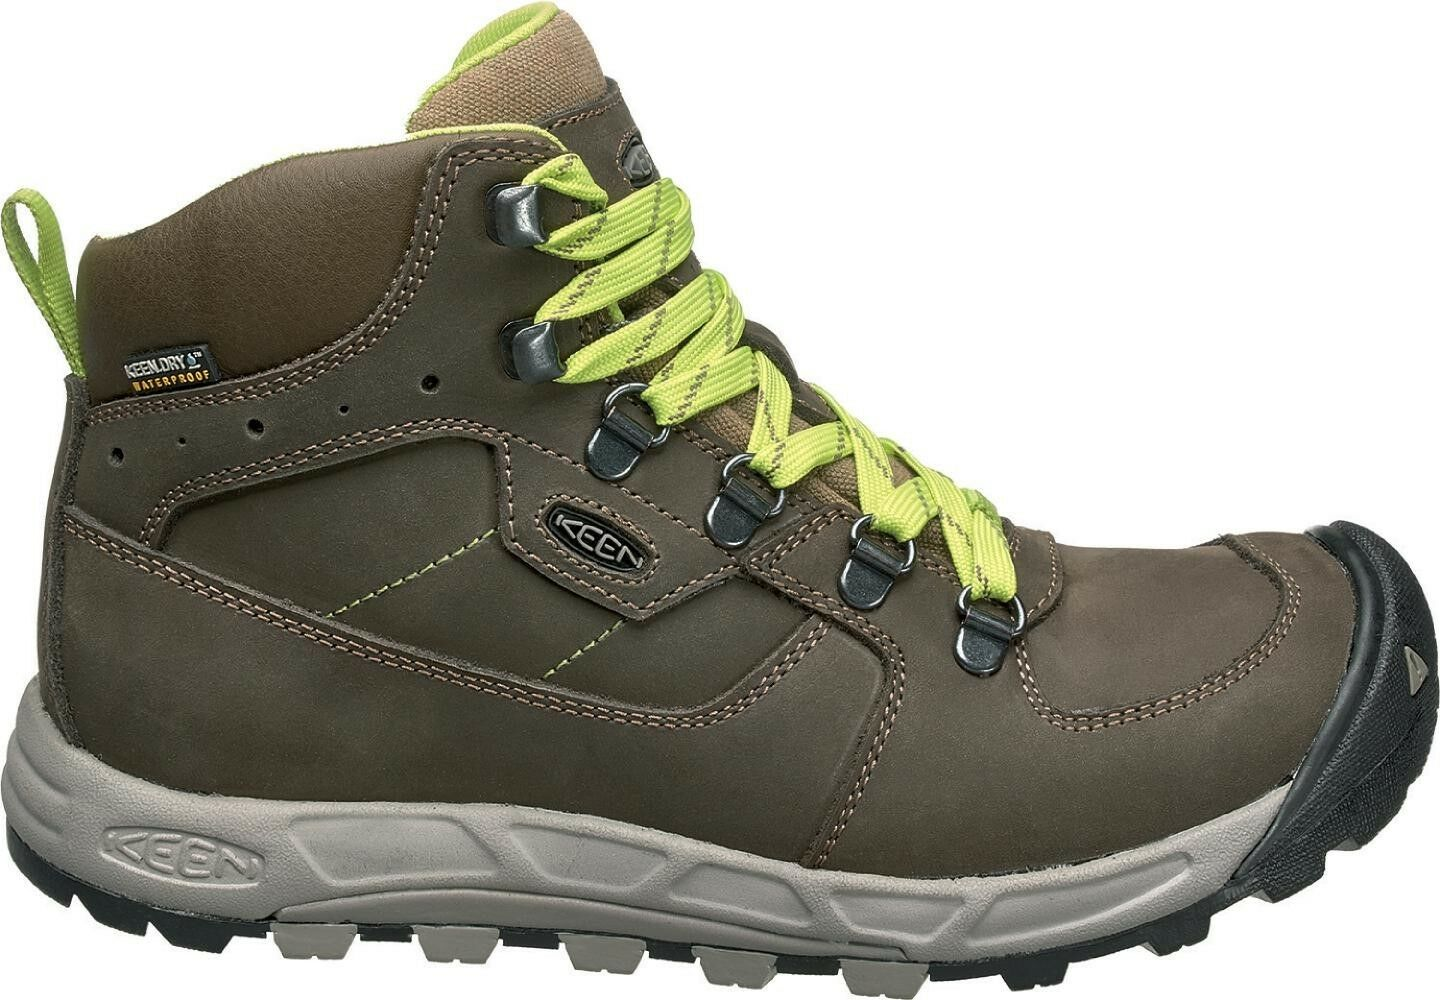 Keen Westward Mid Leather Waterproof Damen Damen Damen Wanderschuh 3b8e85